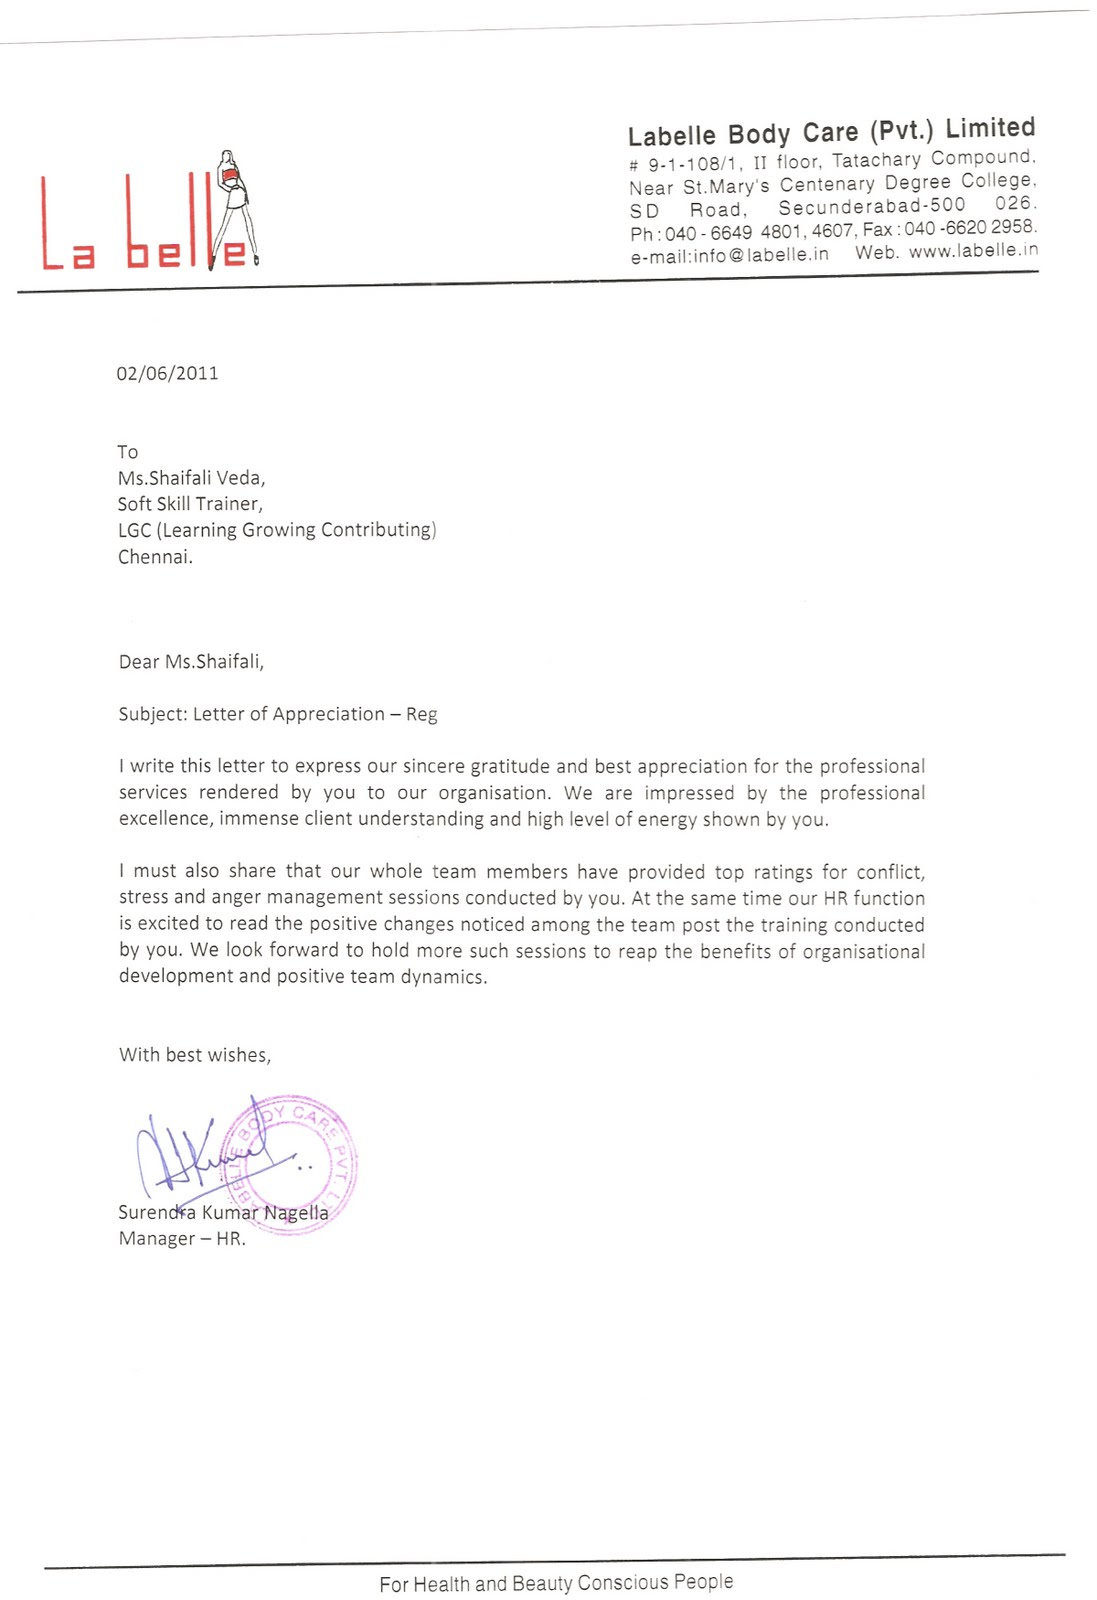 Appreciation Letter By Labelle Body Care Pvt Limited Where Each